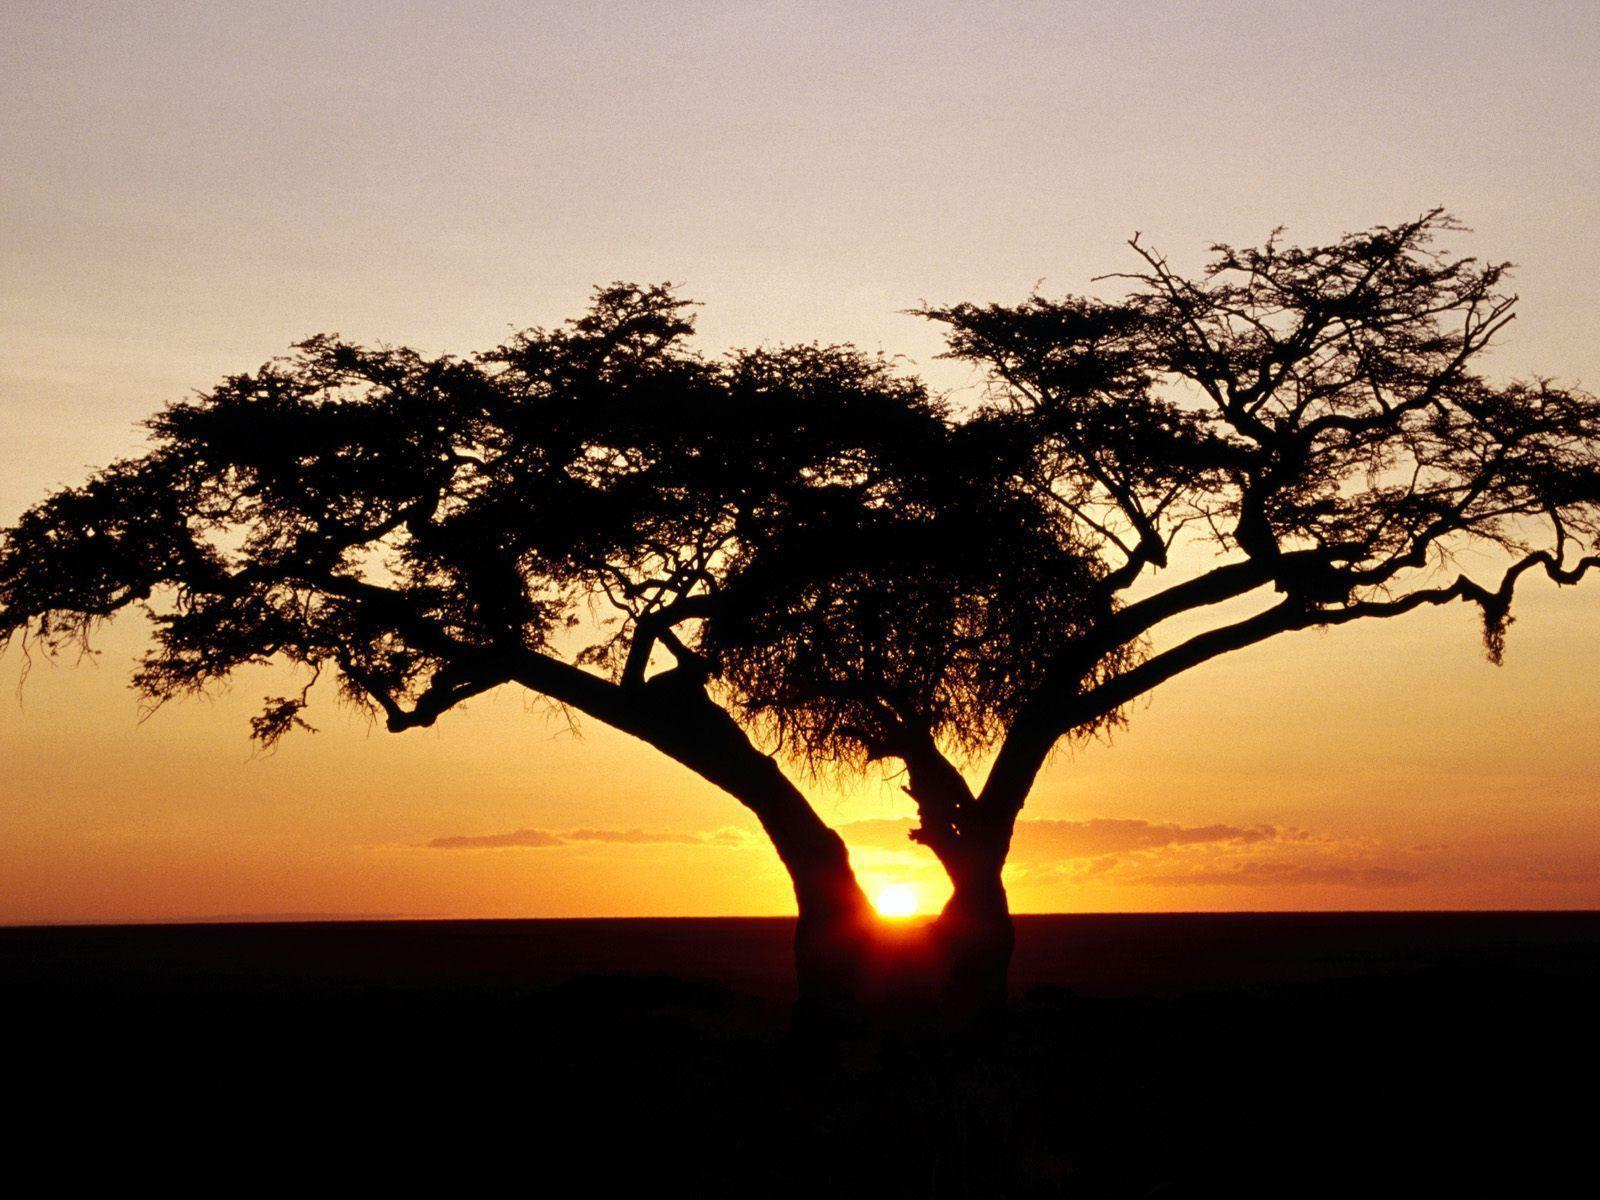 HD Wallpapers: 1600x1200 » Nature » Safari Sunrise, Africa Free